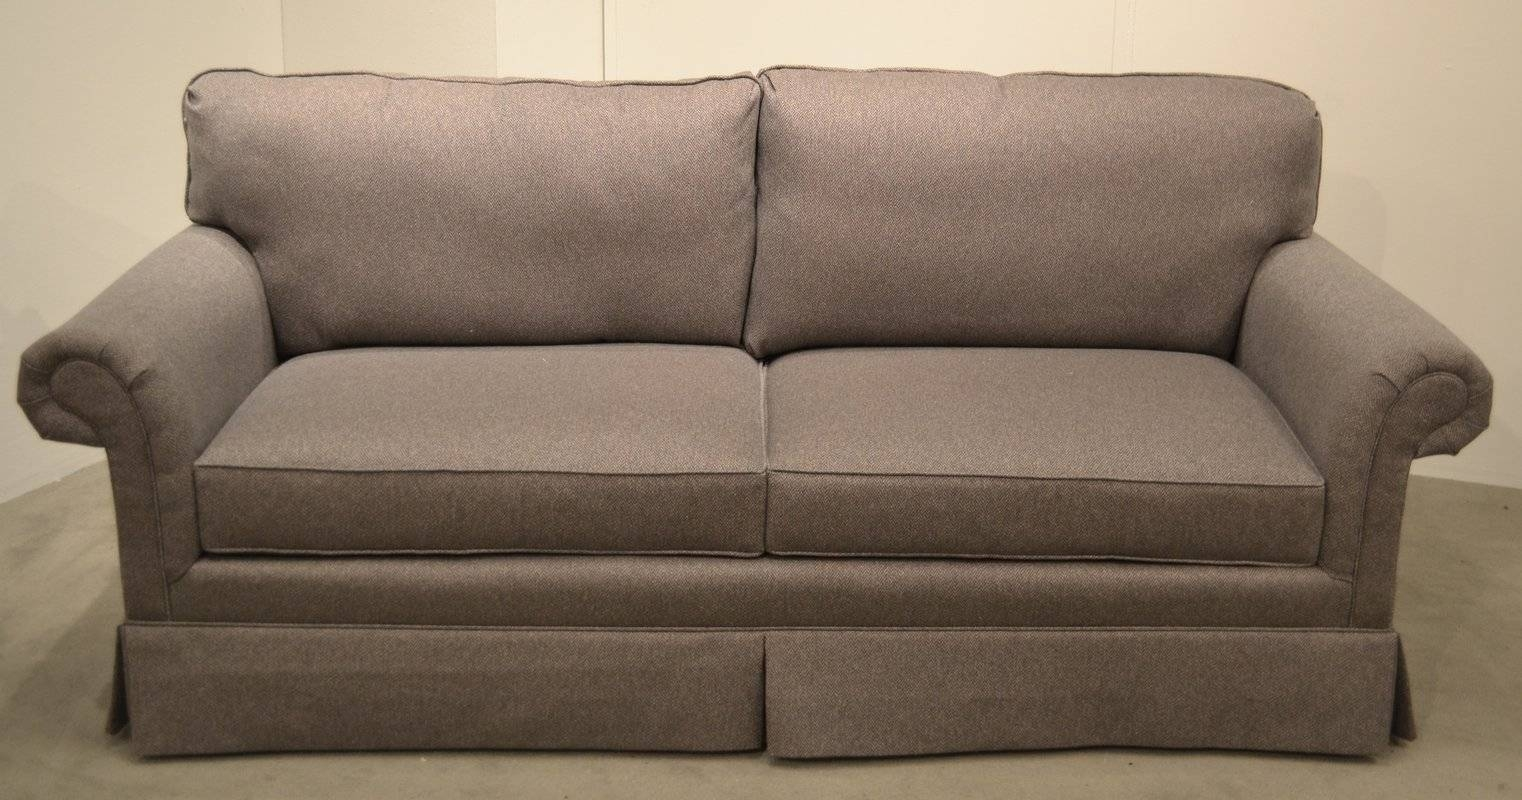 Carolina Classic Furniture Two Cushion Sofa | Wayfair for Cushion Sofa Beds (Image 4 of 30)